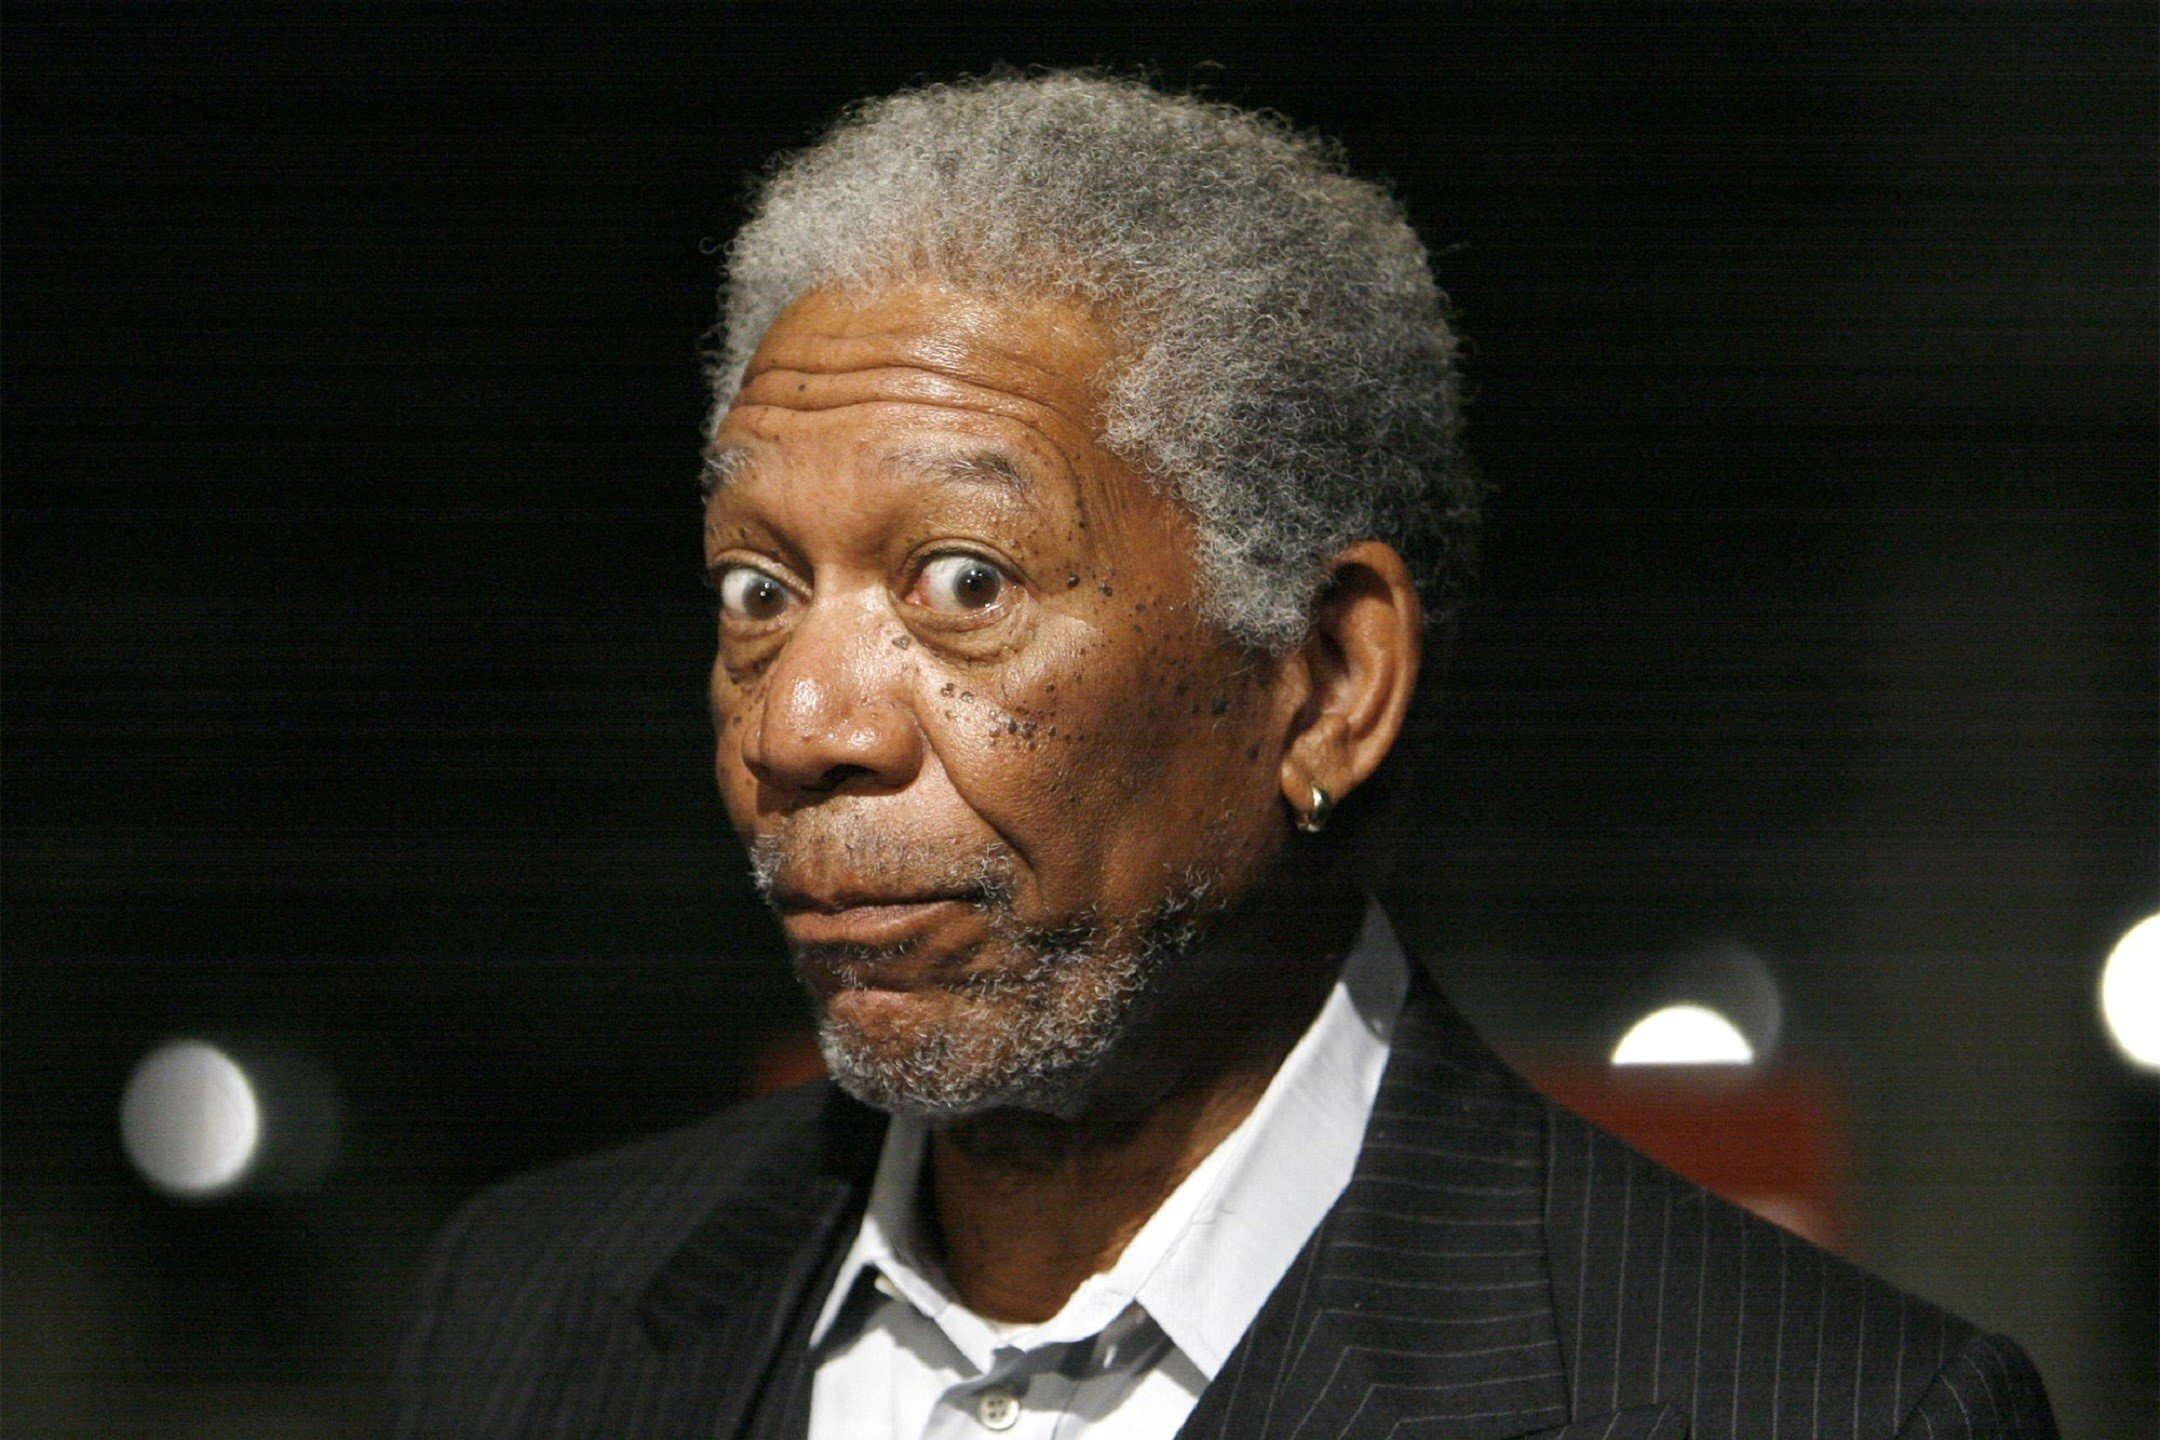 Pictures of Morgan Freeman